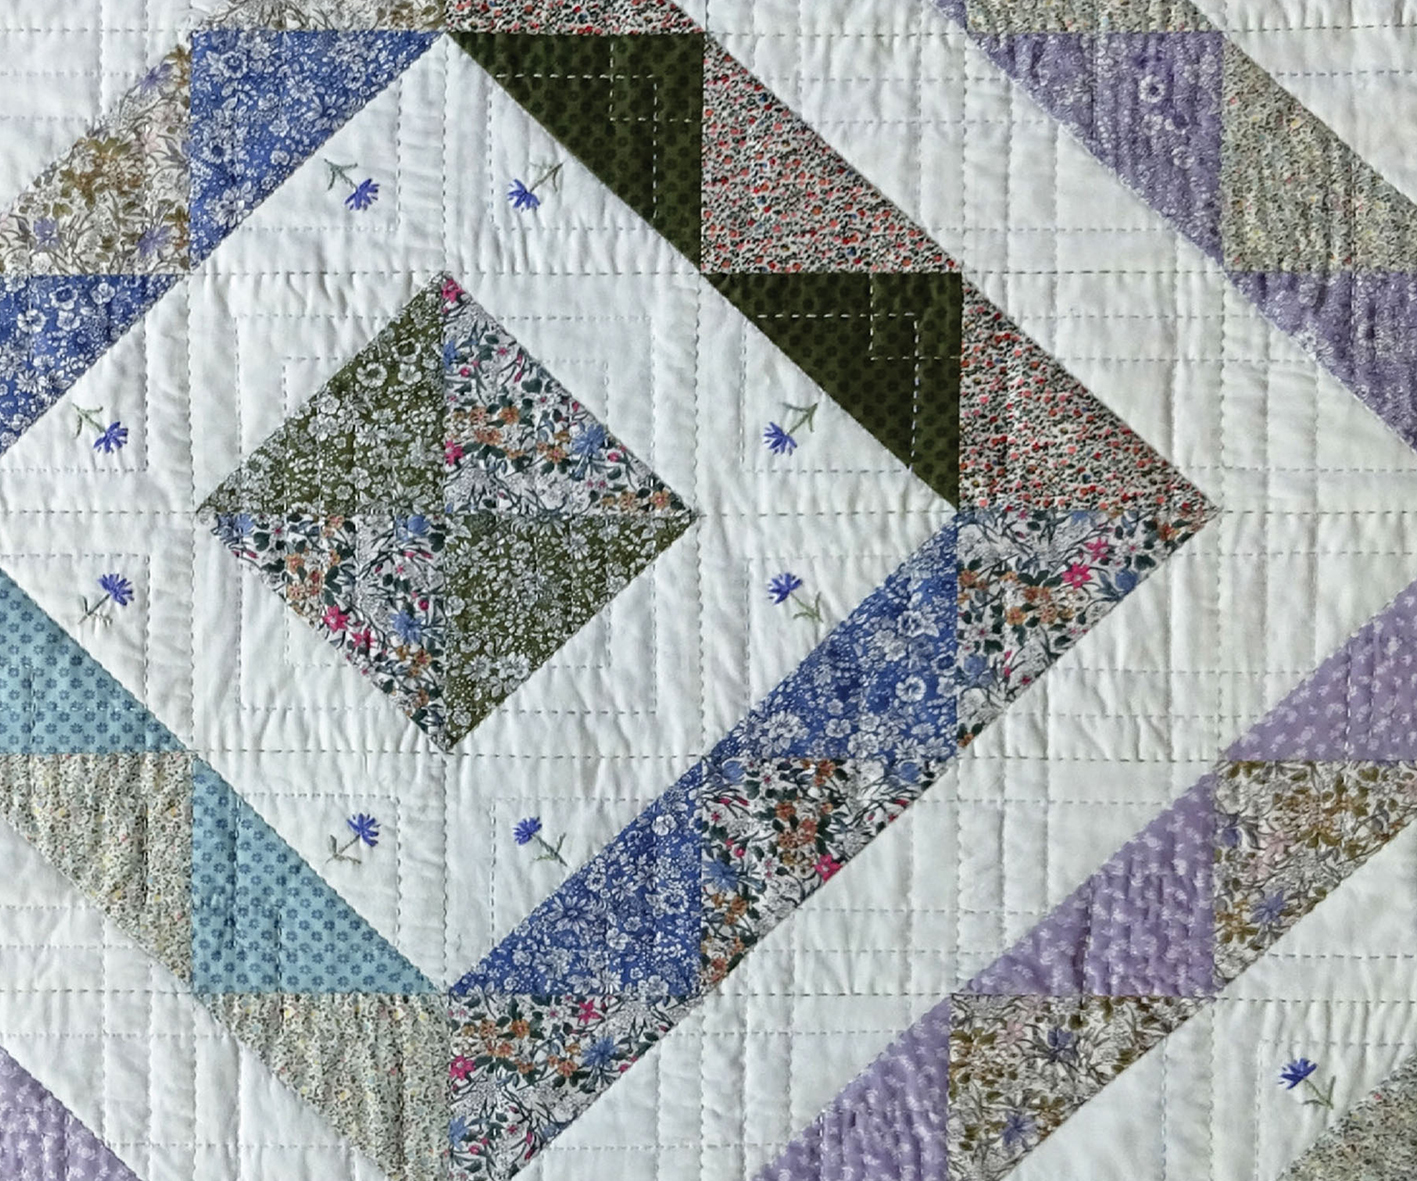 PATCHWORK-INTRO-BANNER - HALF-SQUARE-TRIANGLE-POST-IMAGE